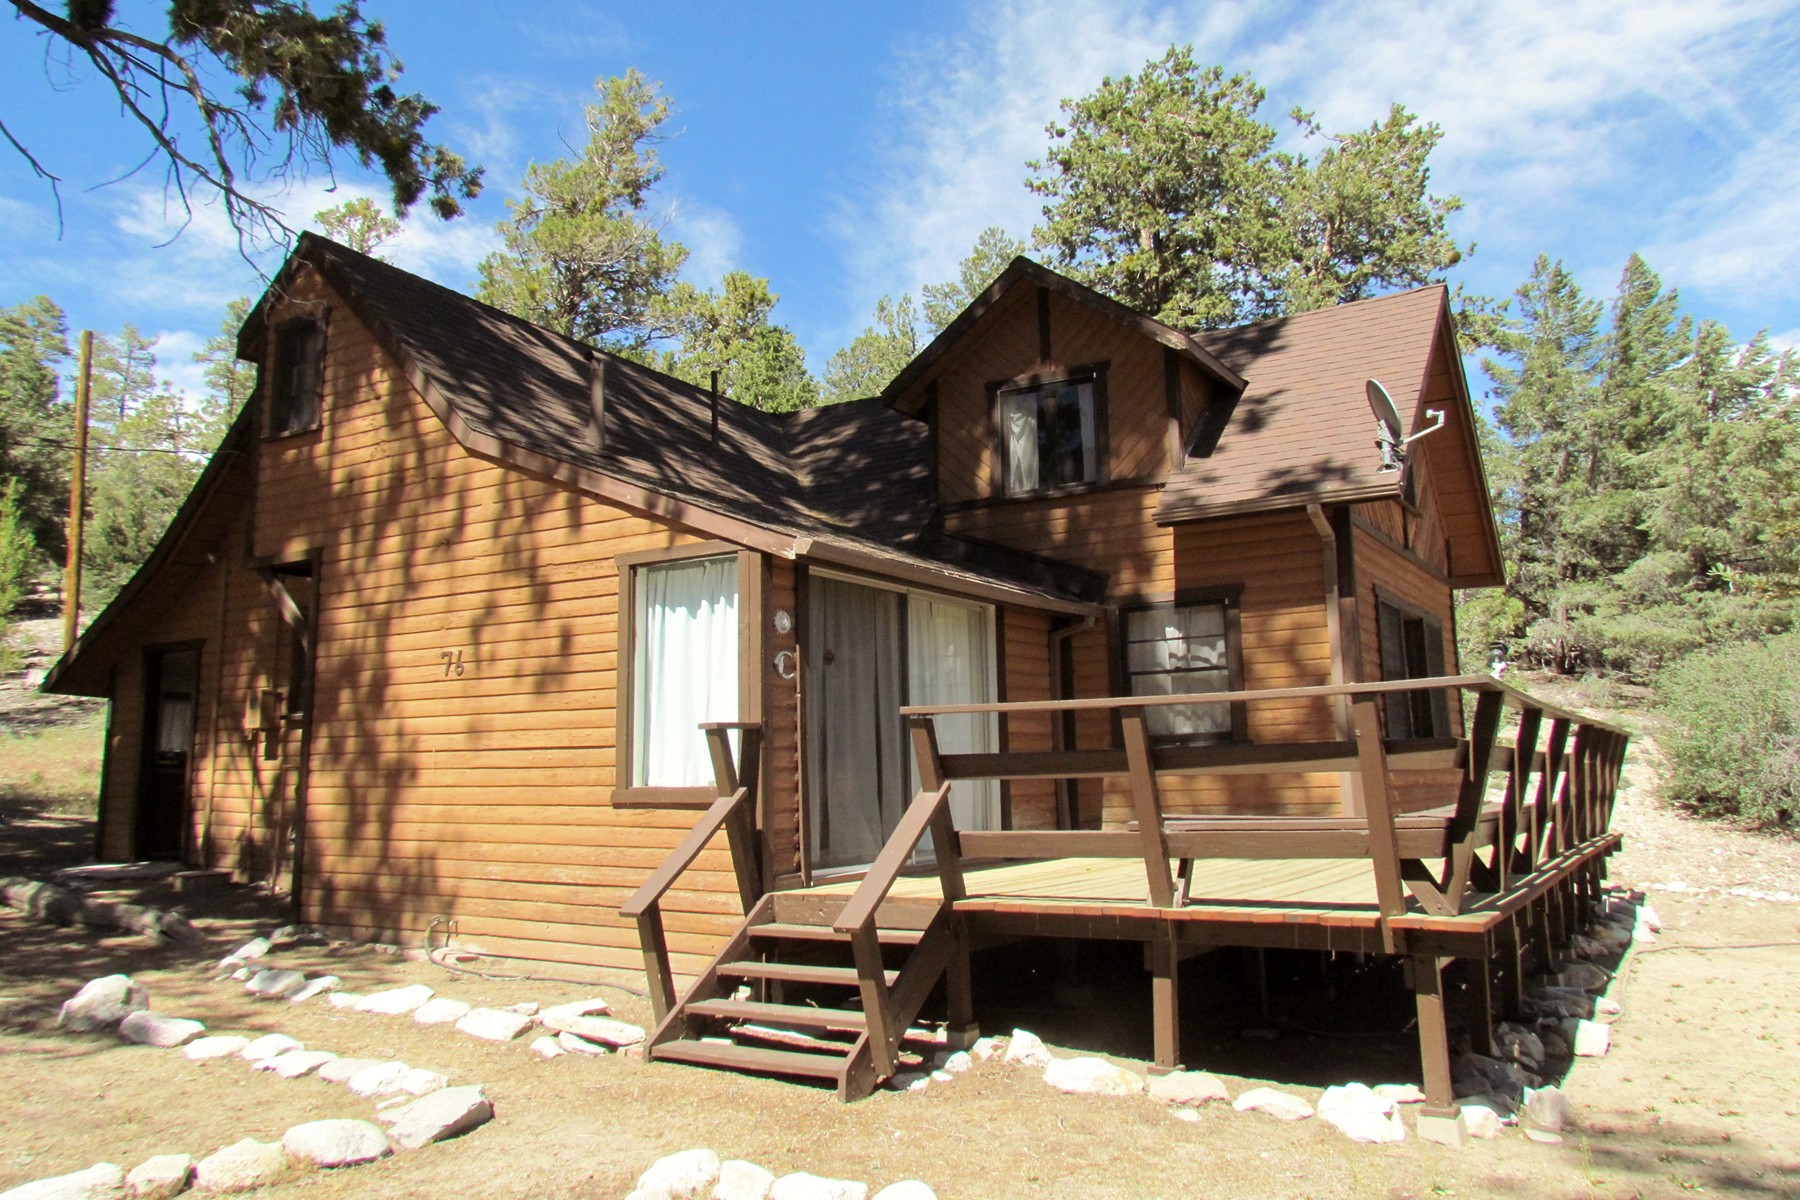 Single Family Home for Sale at 76 Lakeview Tract Fawnskin, California, 92333 United States